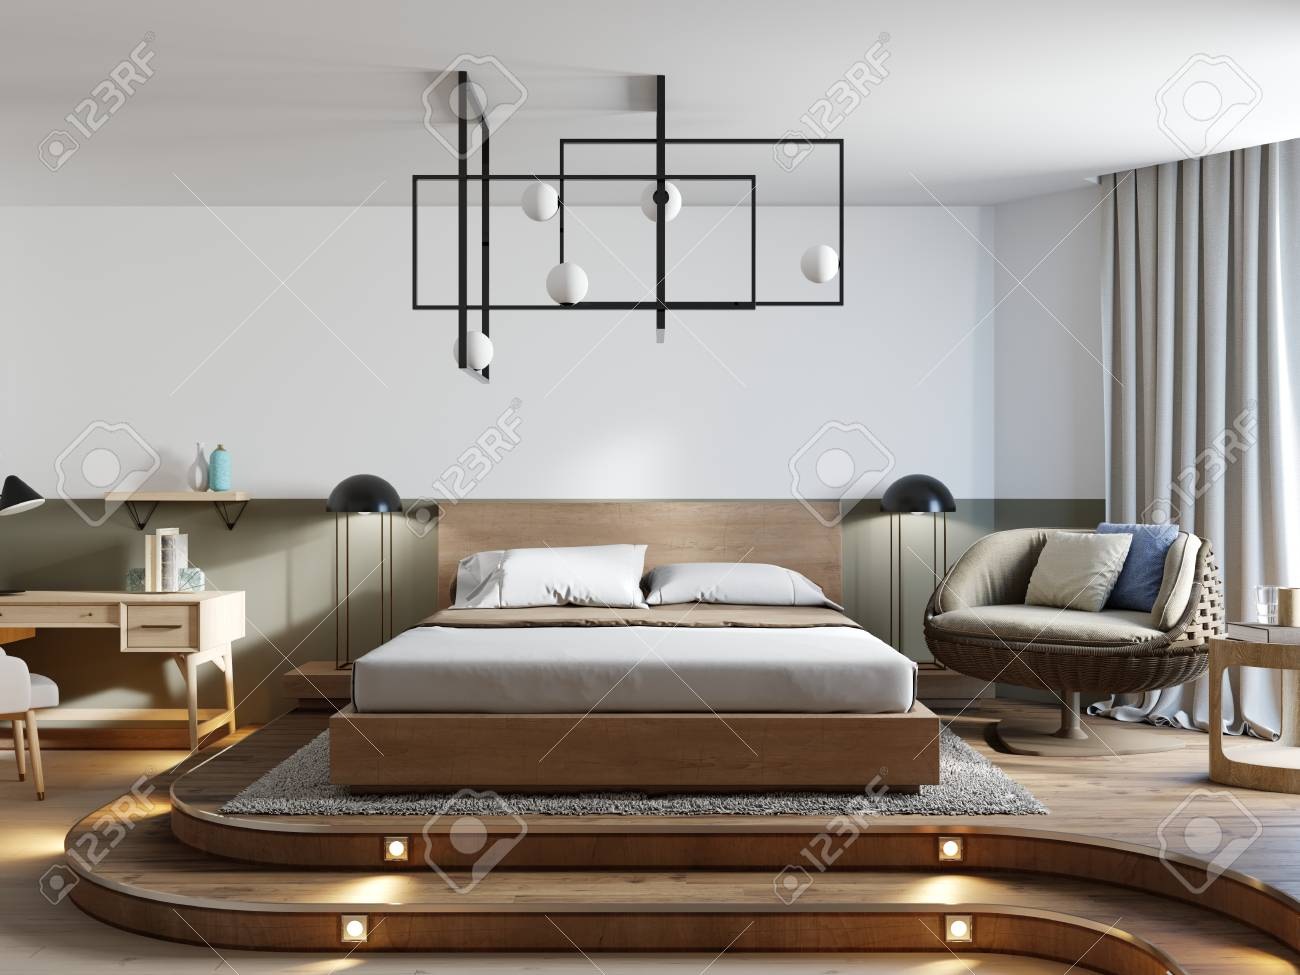 Bedroom Designer Free Loft Style Bedroom Interior Design With Rattan Chair And Desk